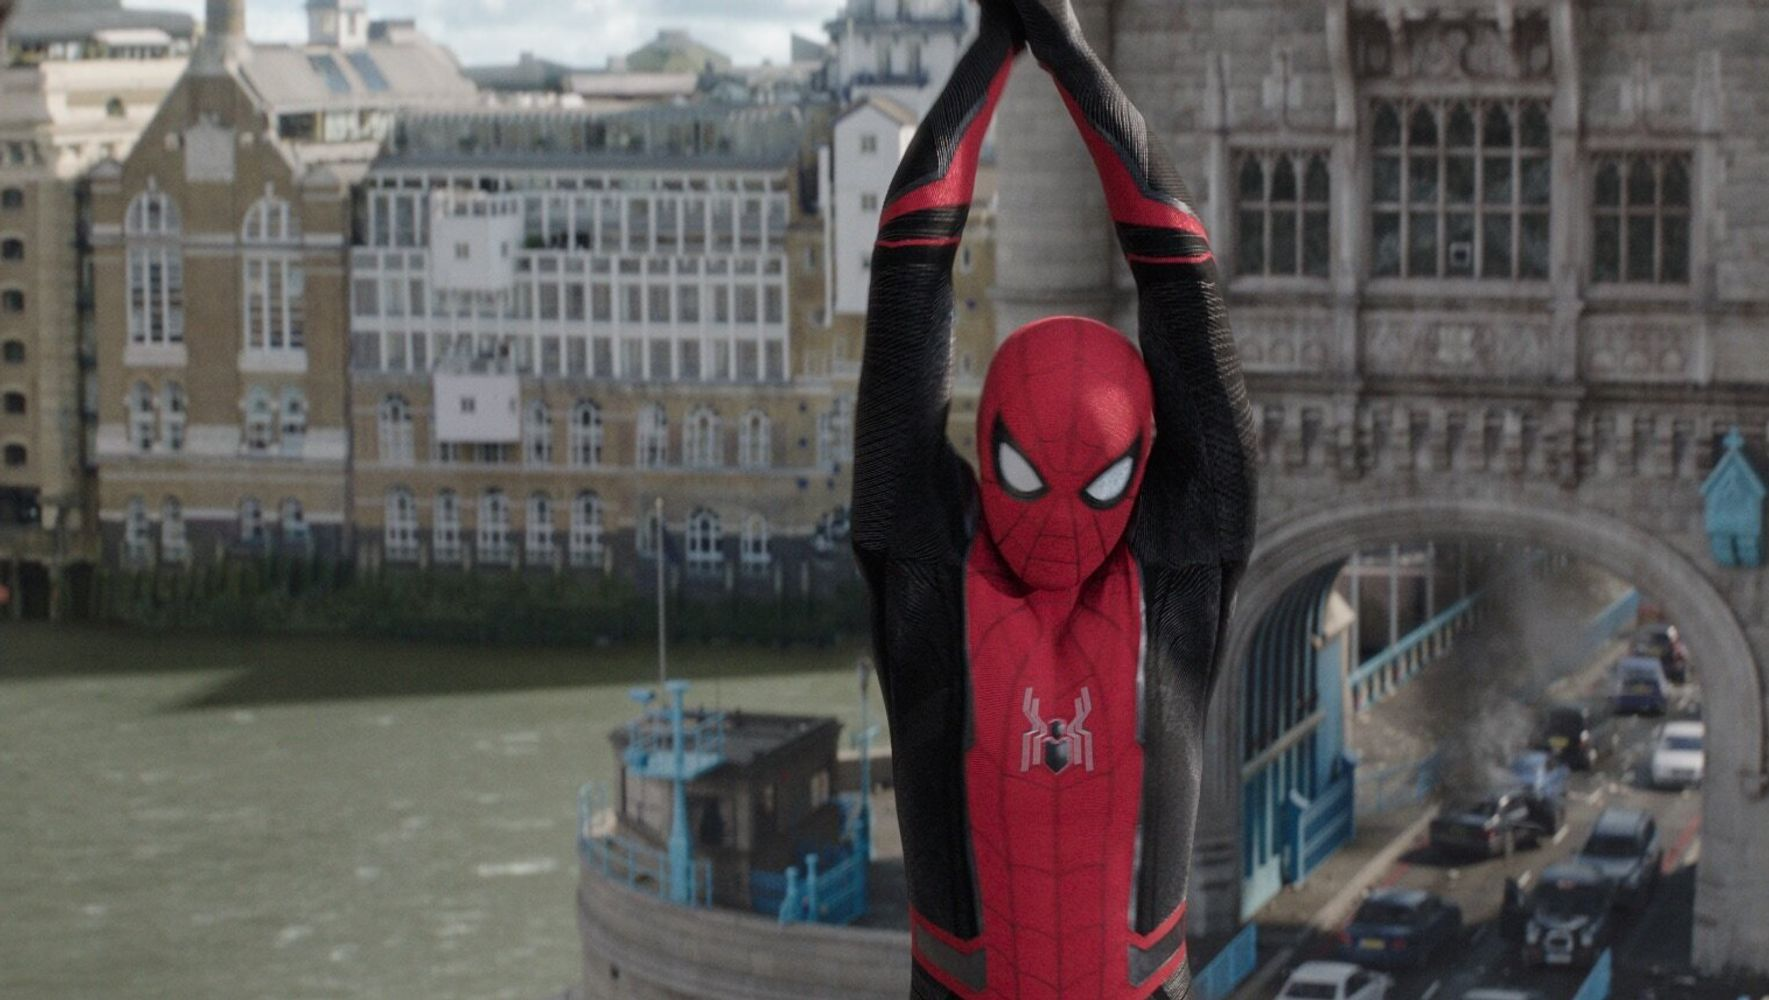 Wild 'Spider-Man 3' News Has Our Spidey Senses Tingling About Major Rumor